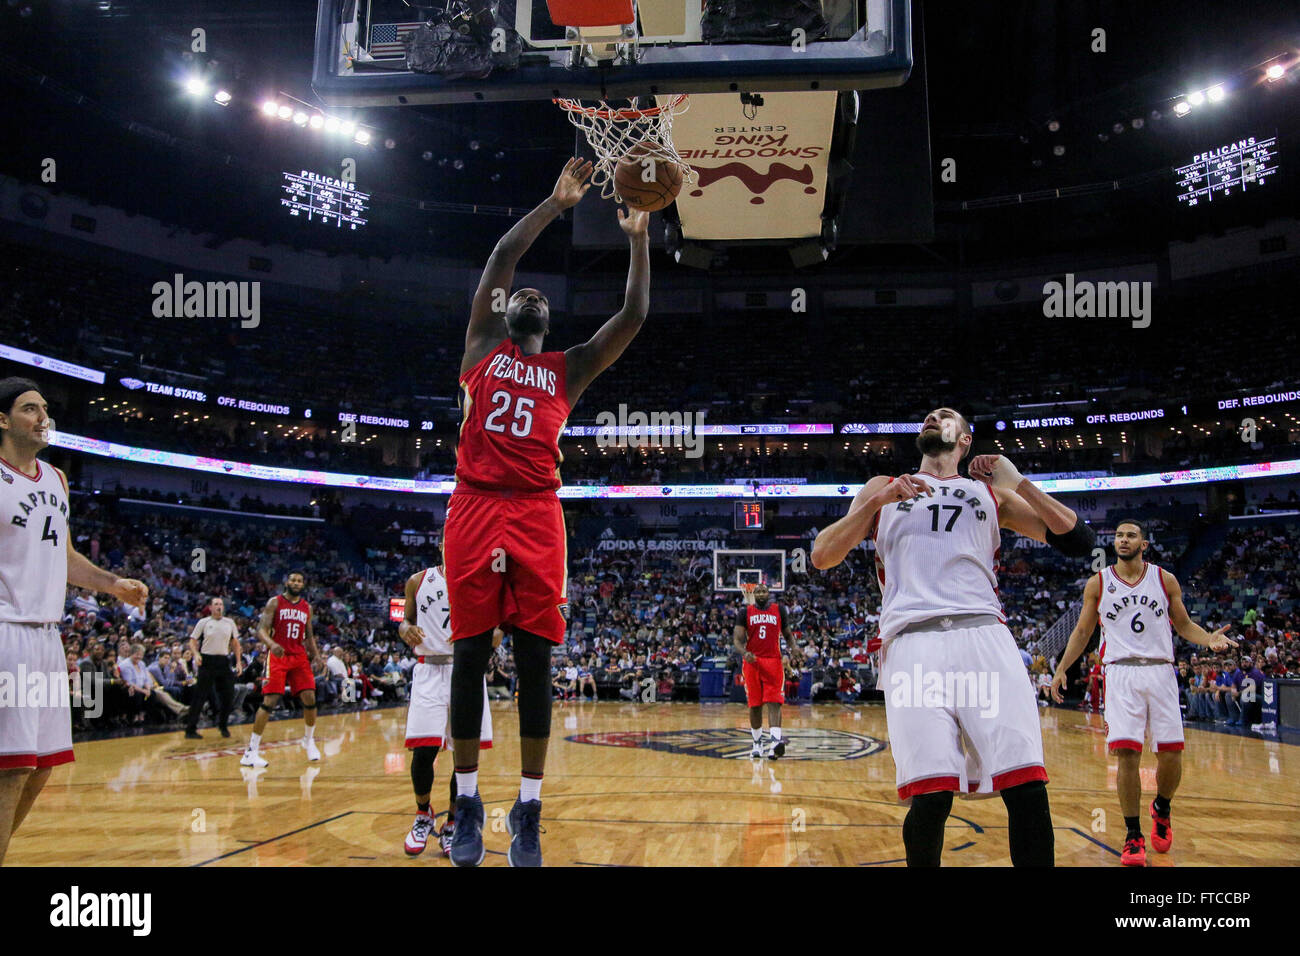 New Orleans La Usa 26th Mar 2016 New Orleans Pelicans